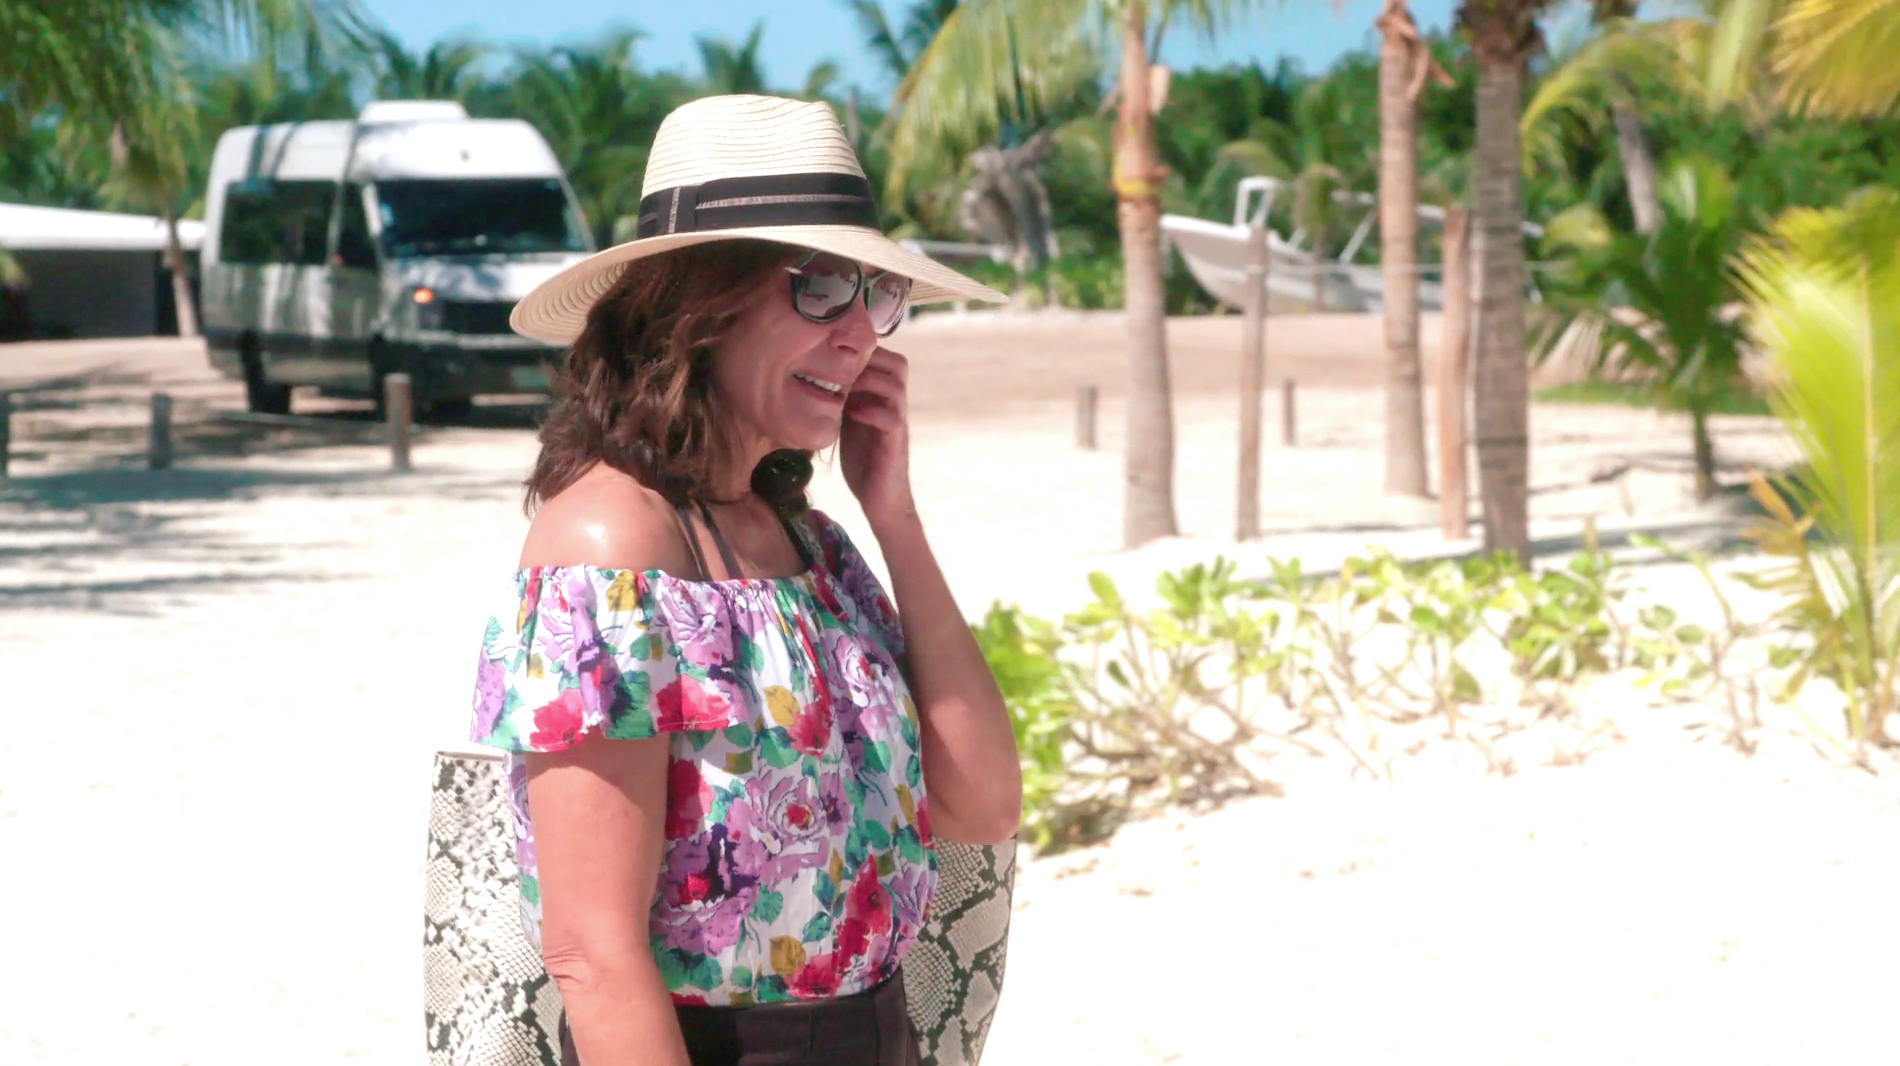 Reality TV Ratings, Luann de Lesseps, The Real Housewives of New York City, RHONY, Bravo, Bravo Ratings, Double Shot At Love, MTV Ratings, Marriage Boot Camp, WE tv